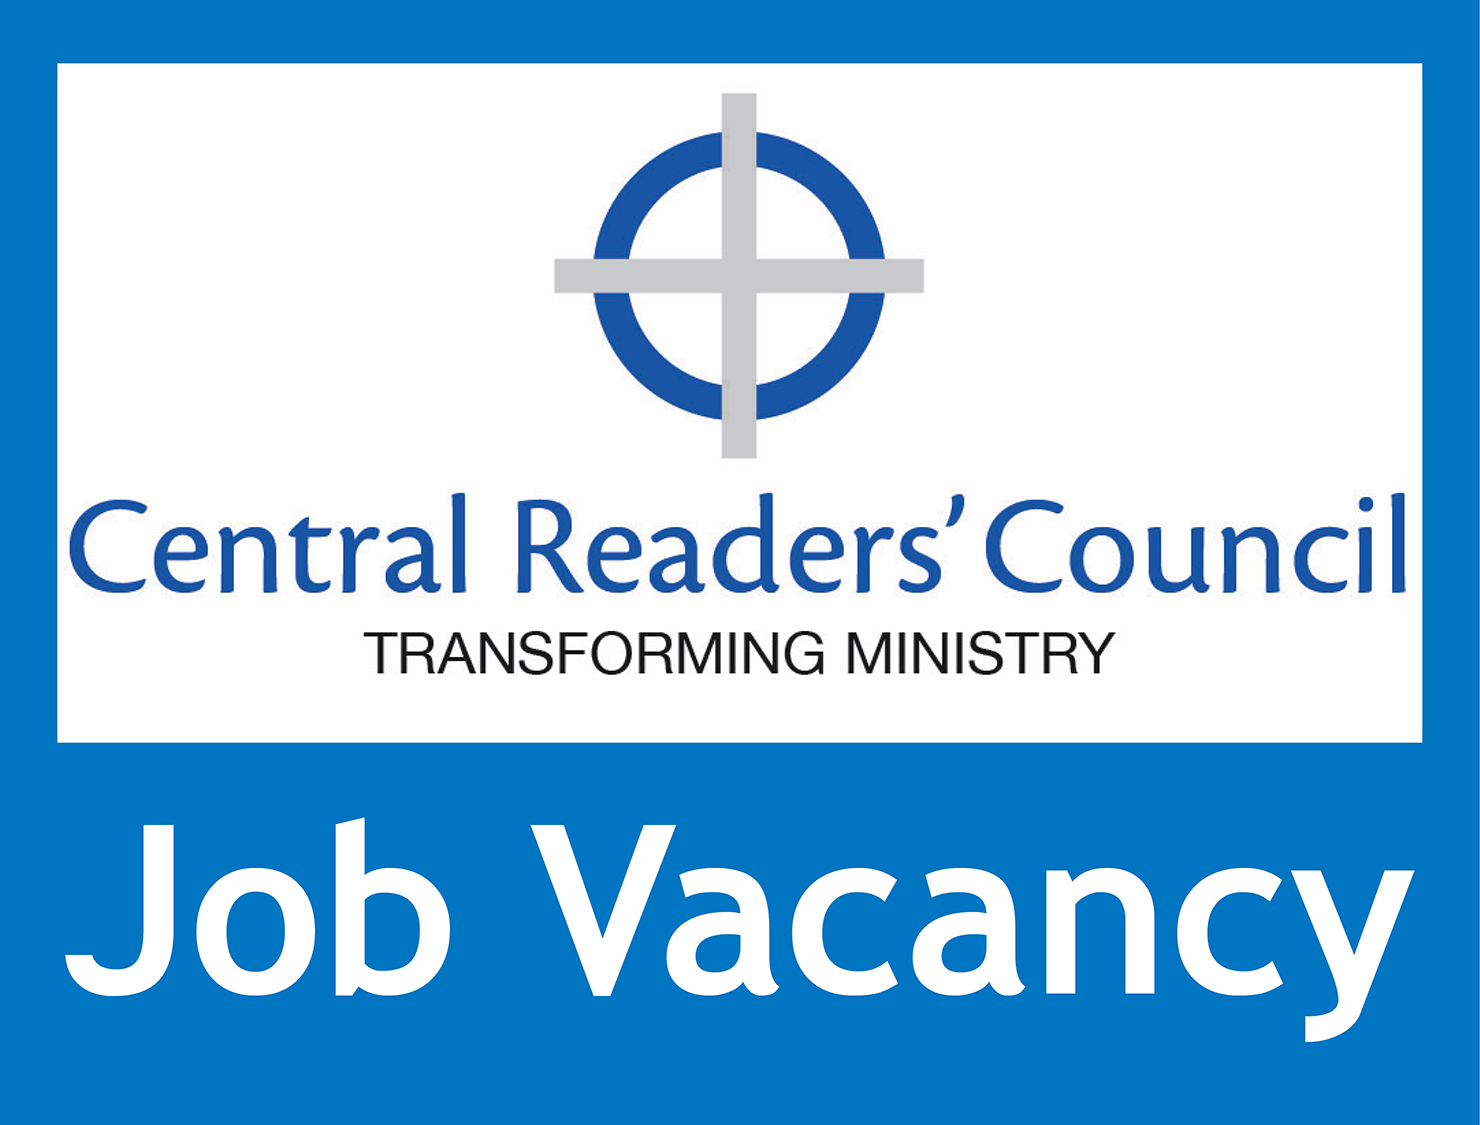 New role – CRC is looking for an assistant to help the Secretary with routine administration.